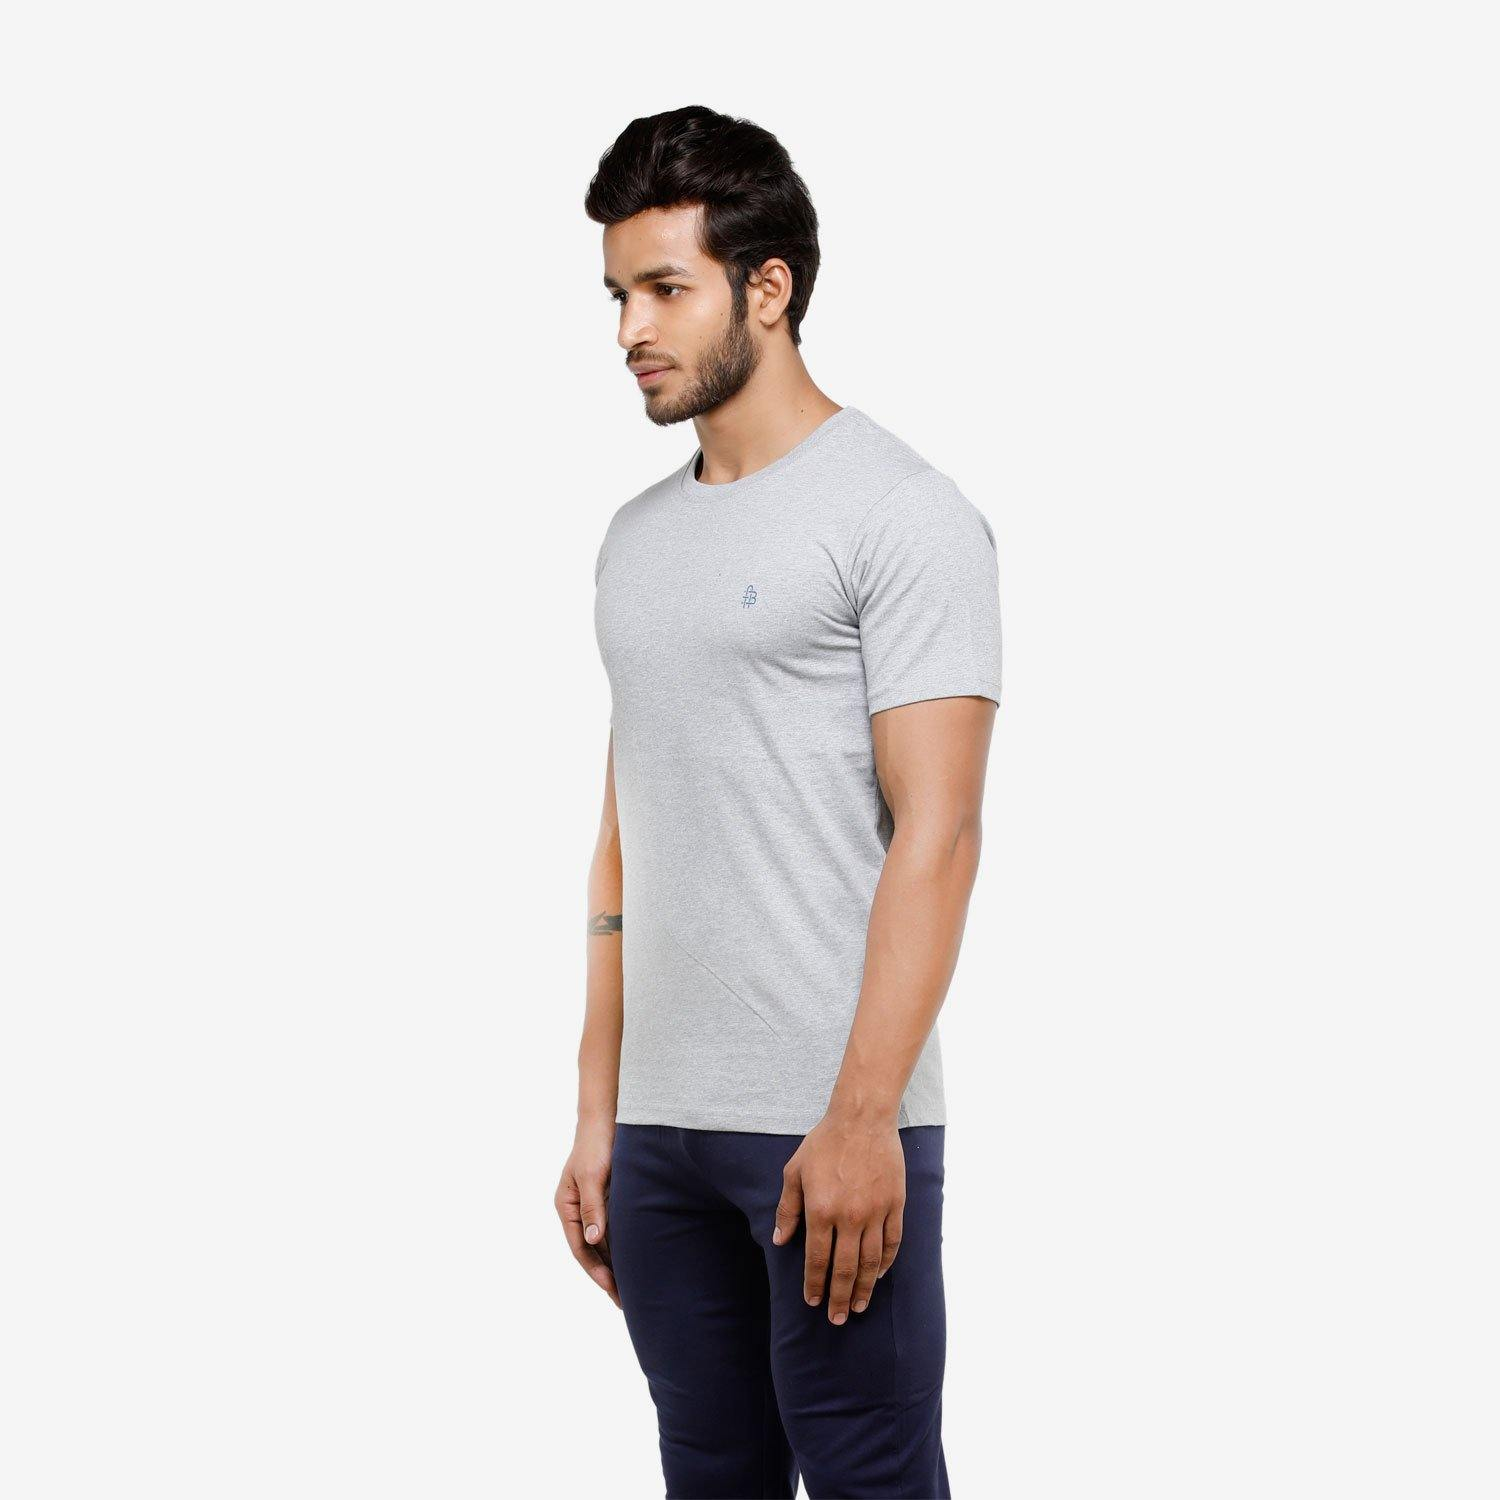 Men Casual T-Shirt